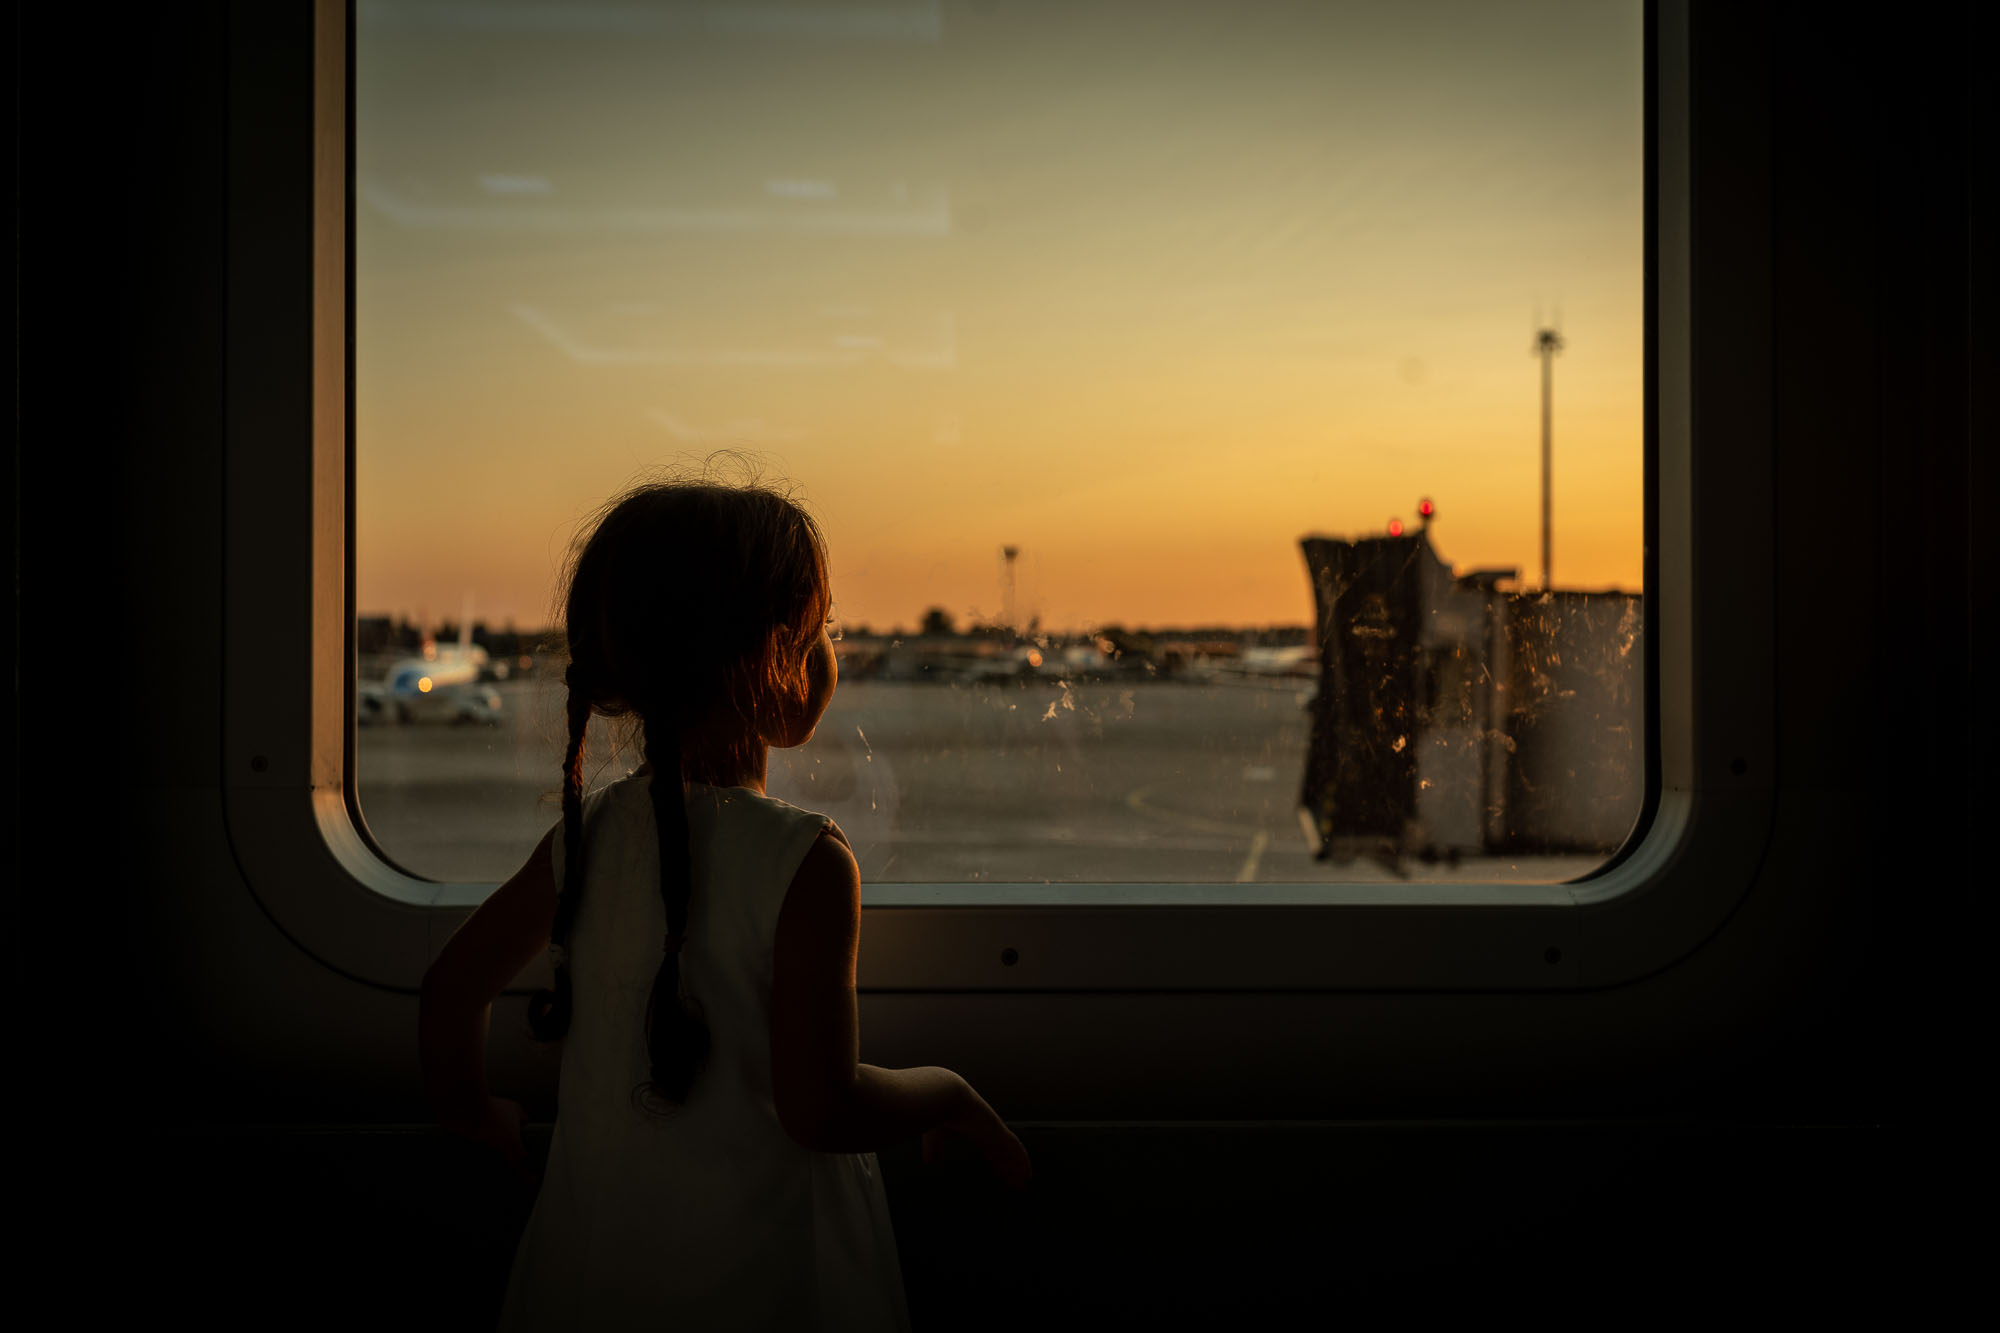 Looking out a window at the airport during sunset